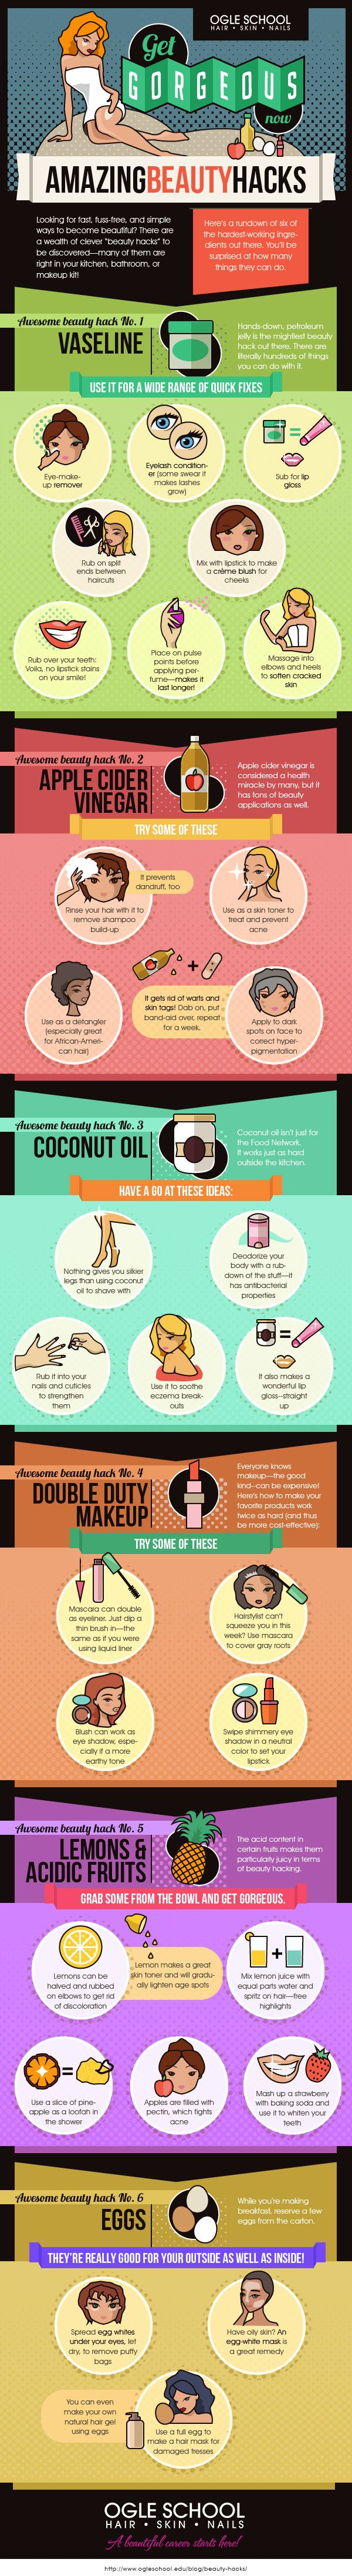 Infographic of the most versatile and quick beauty hacks | Stylist Magazine